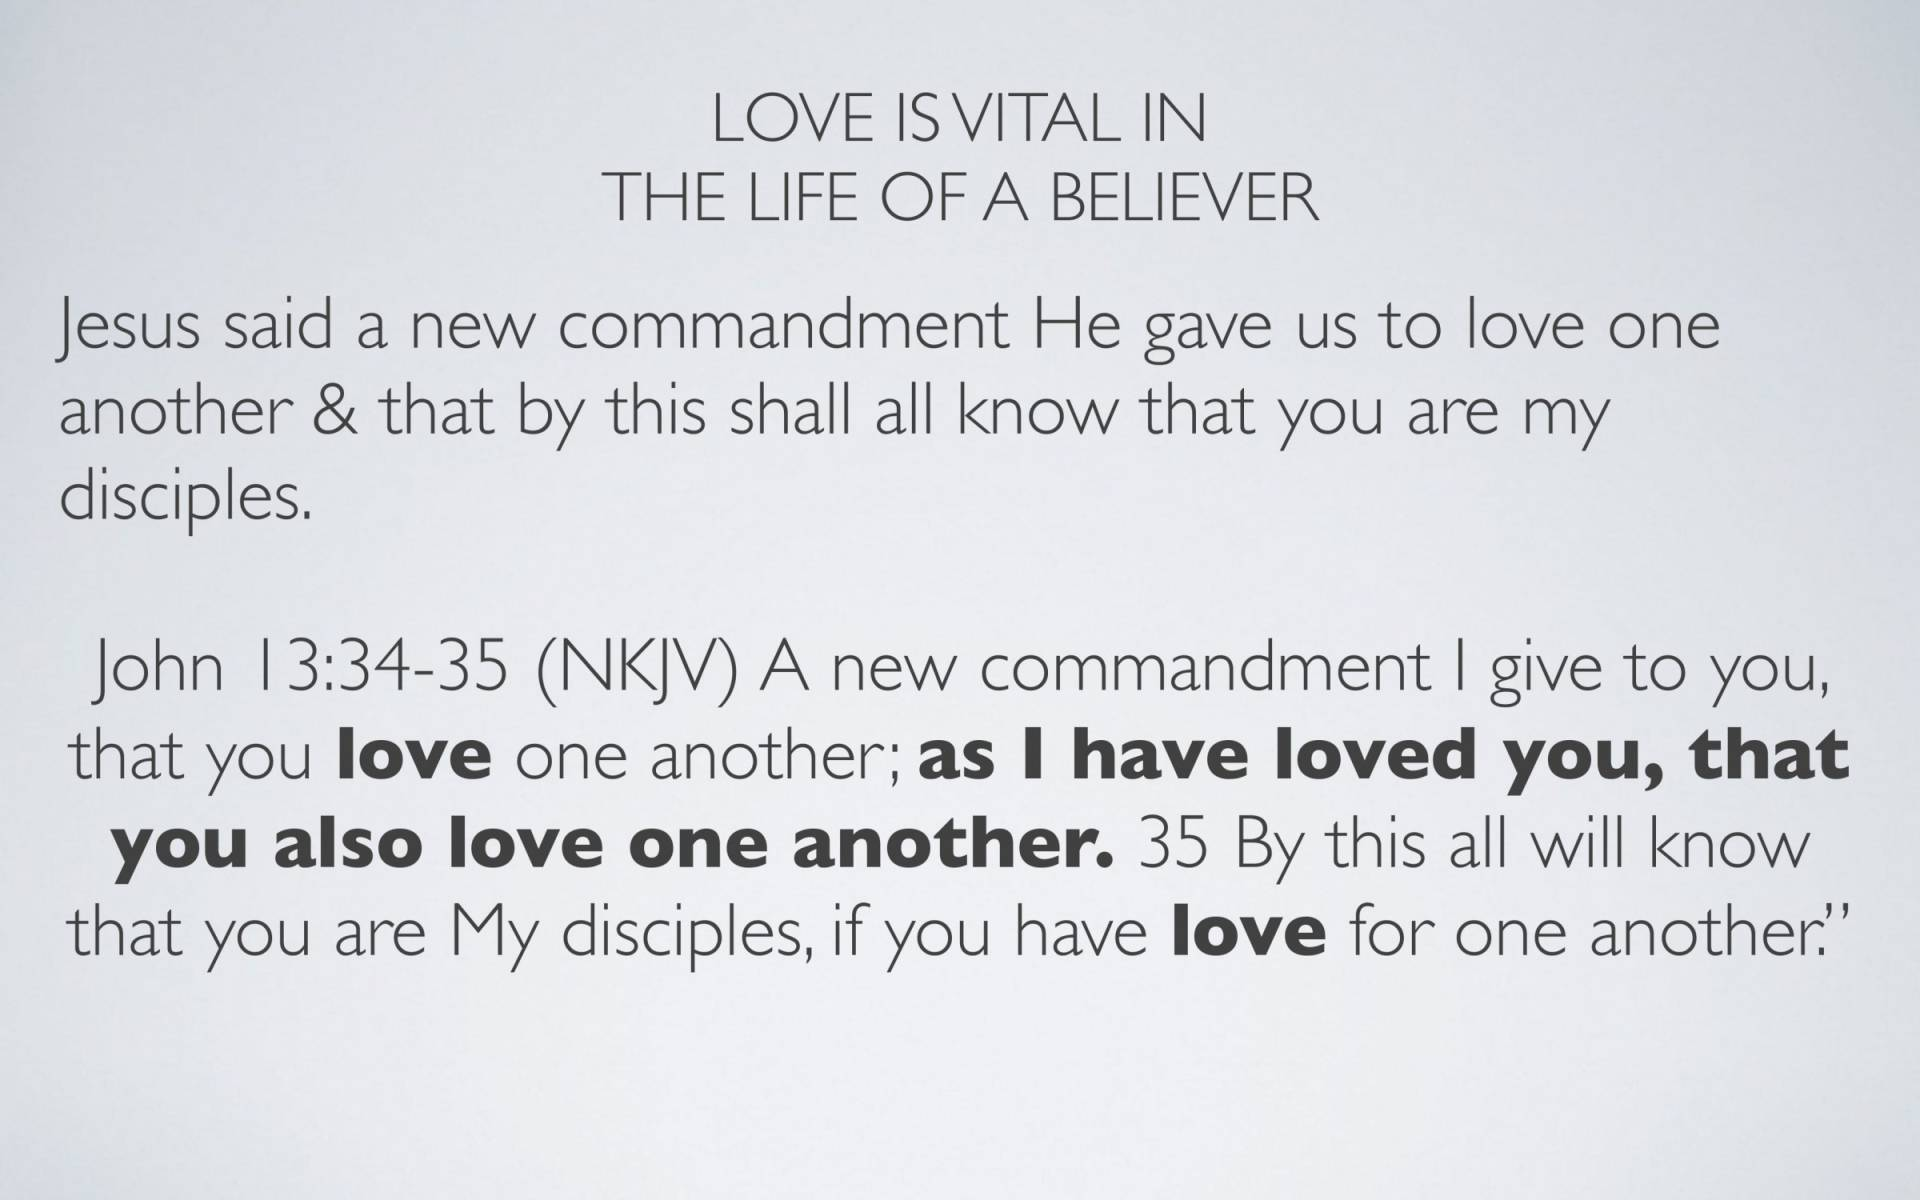 BC&D-34 - Lesson 13-2 - The Source Of The River Of Love That Is To Flow Out Of The Life Of A Believer-06